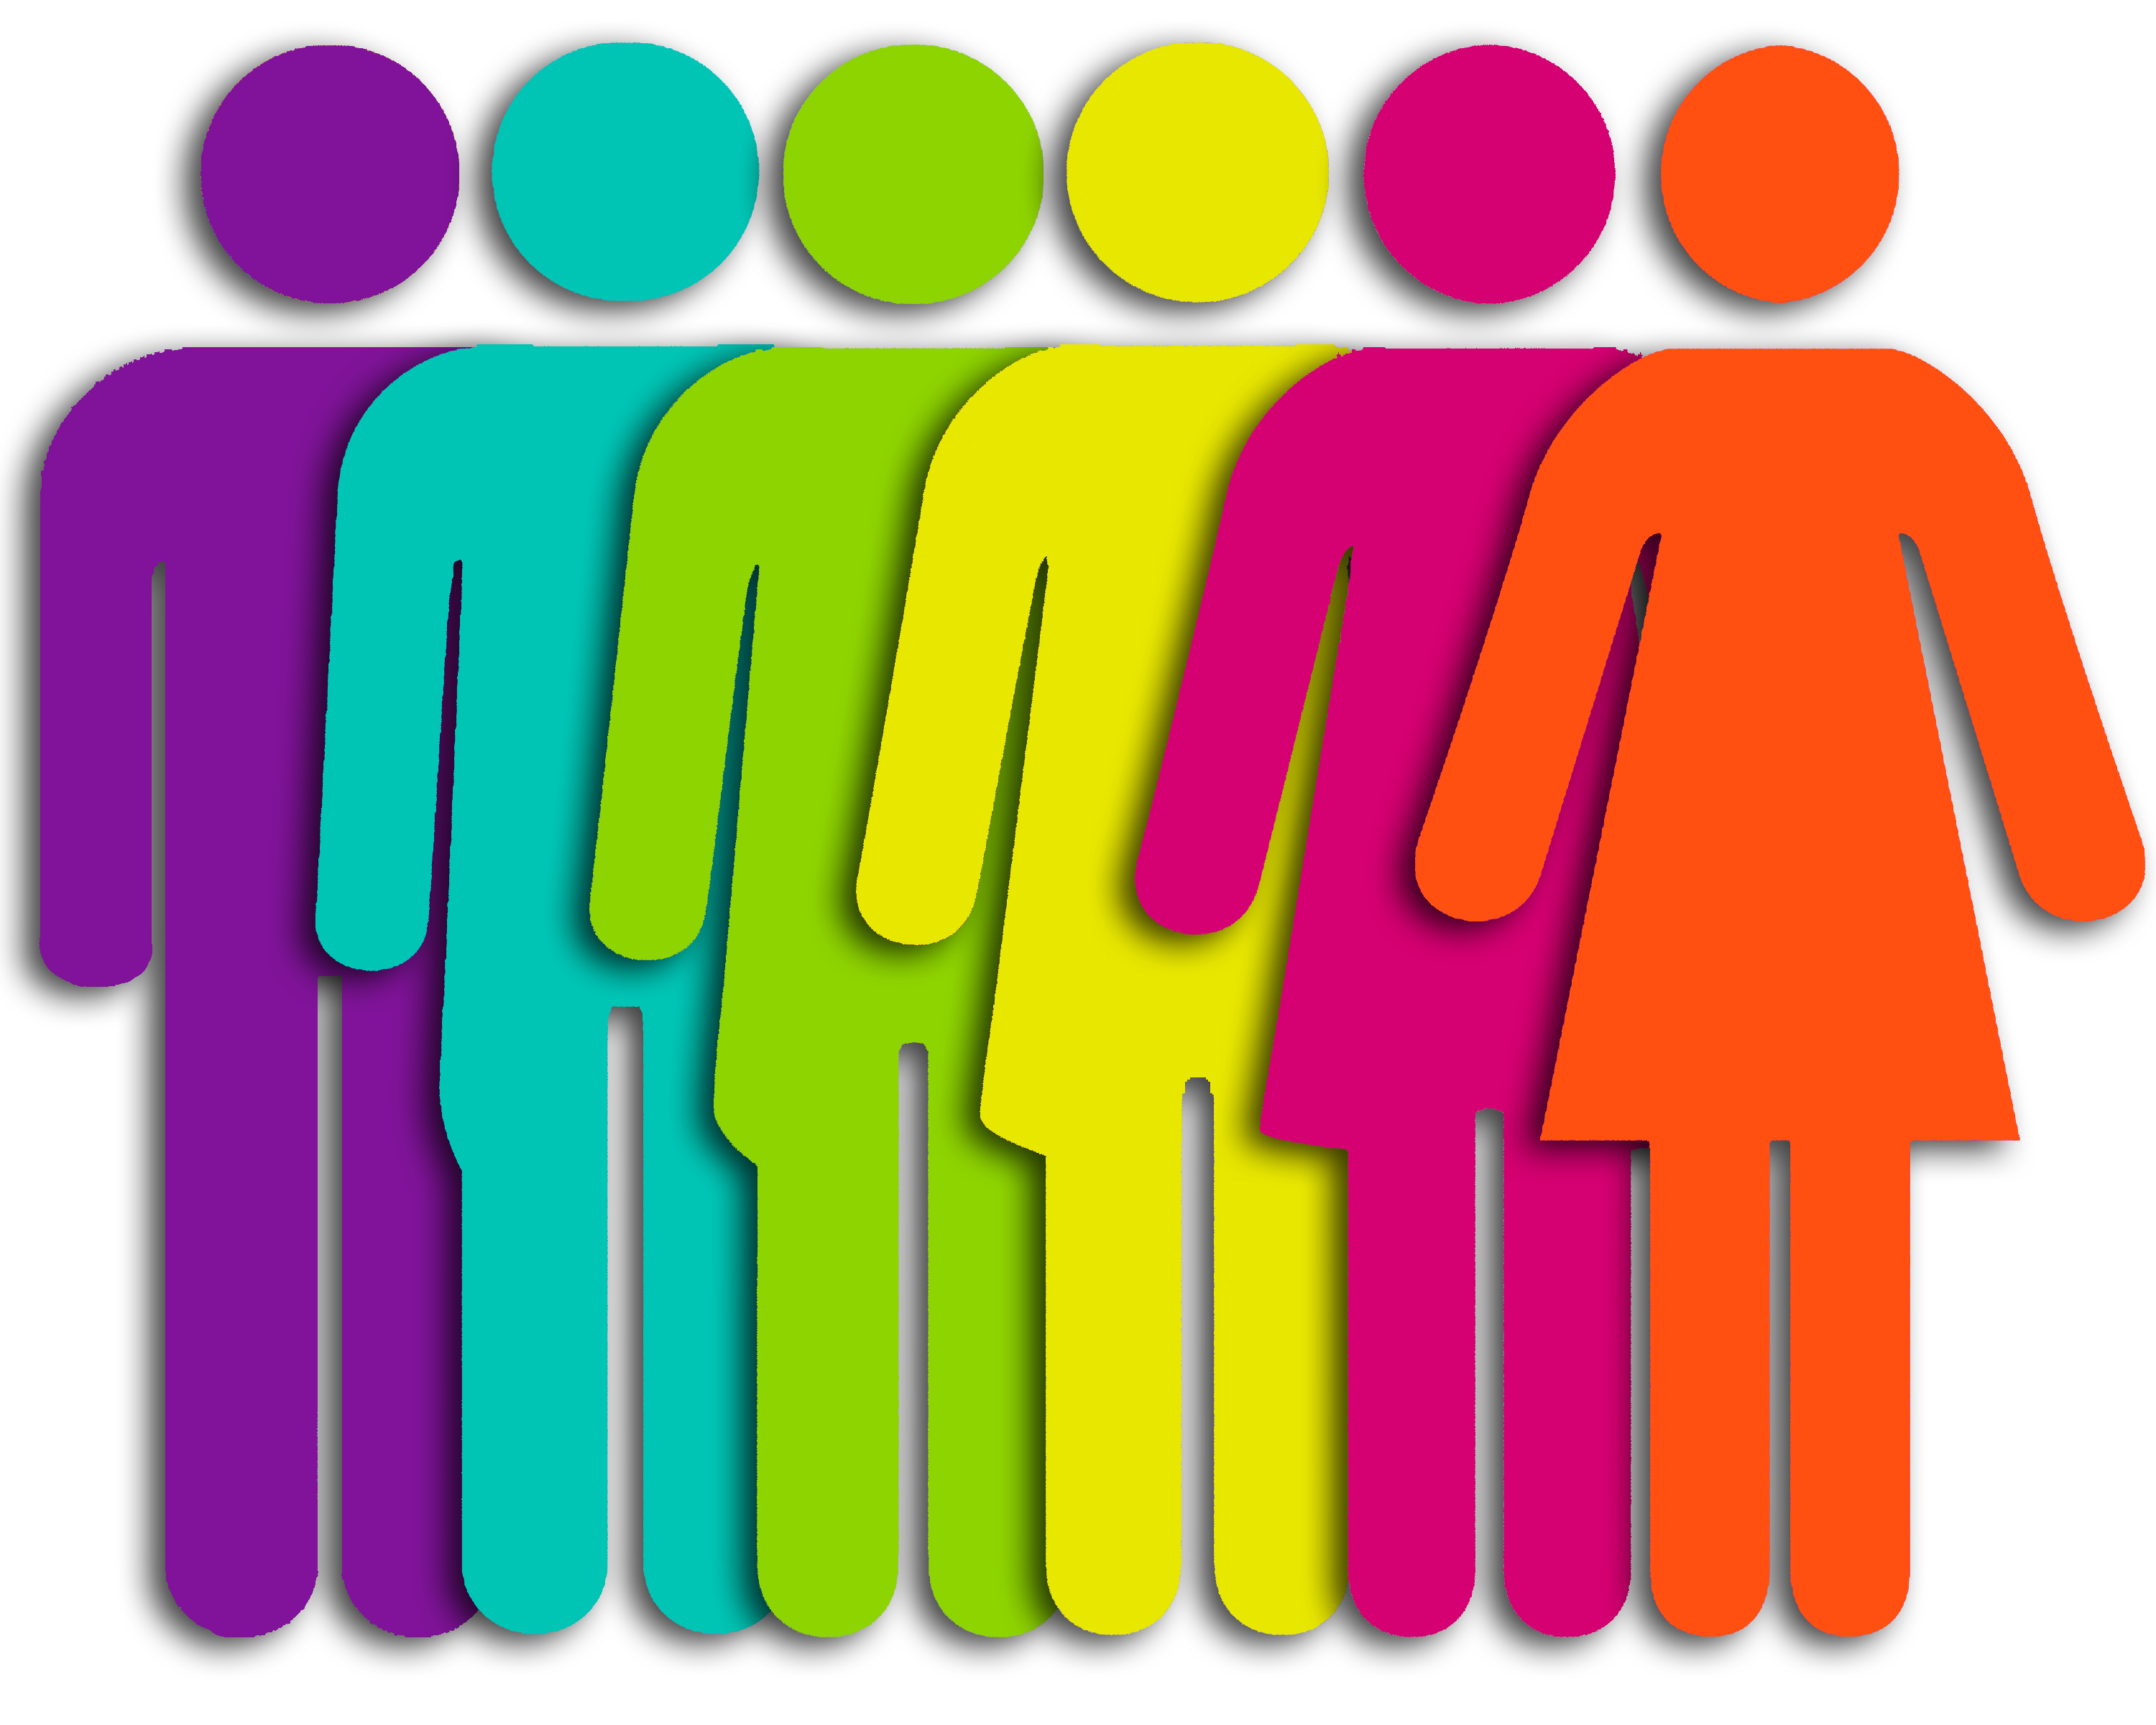 Worry clipart psychosocial. How to support transgender